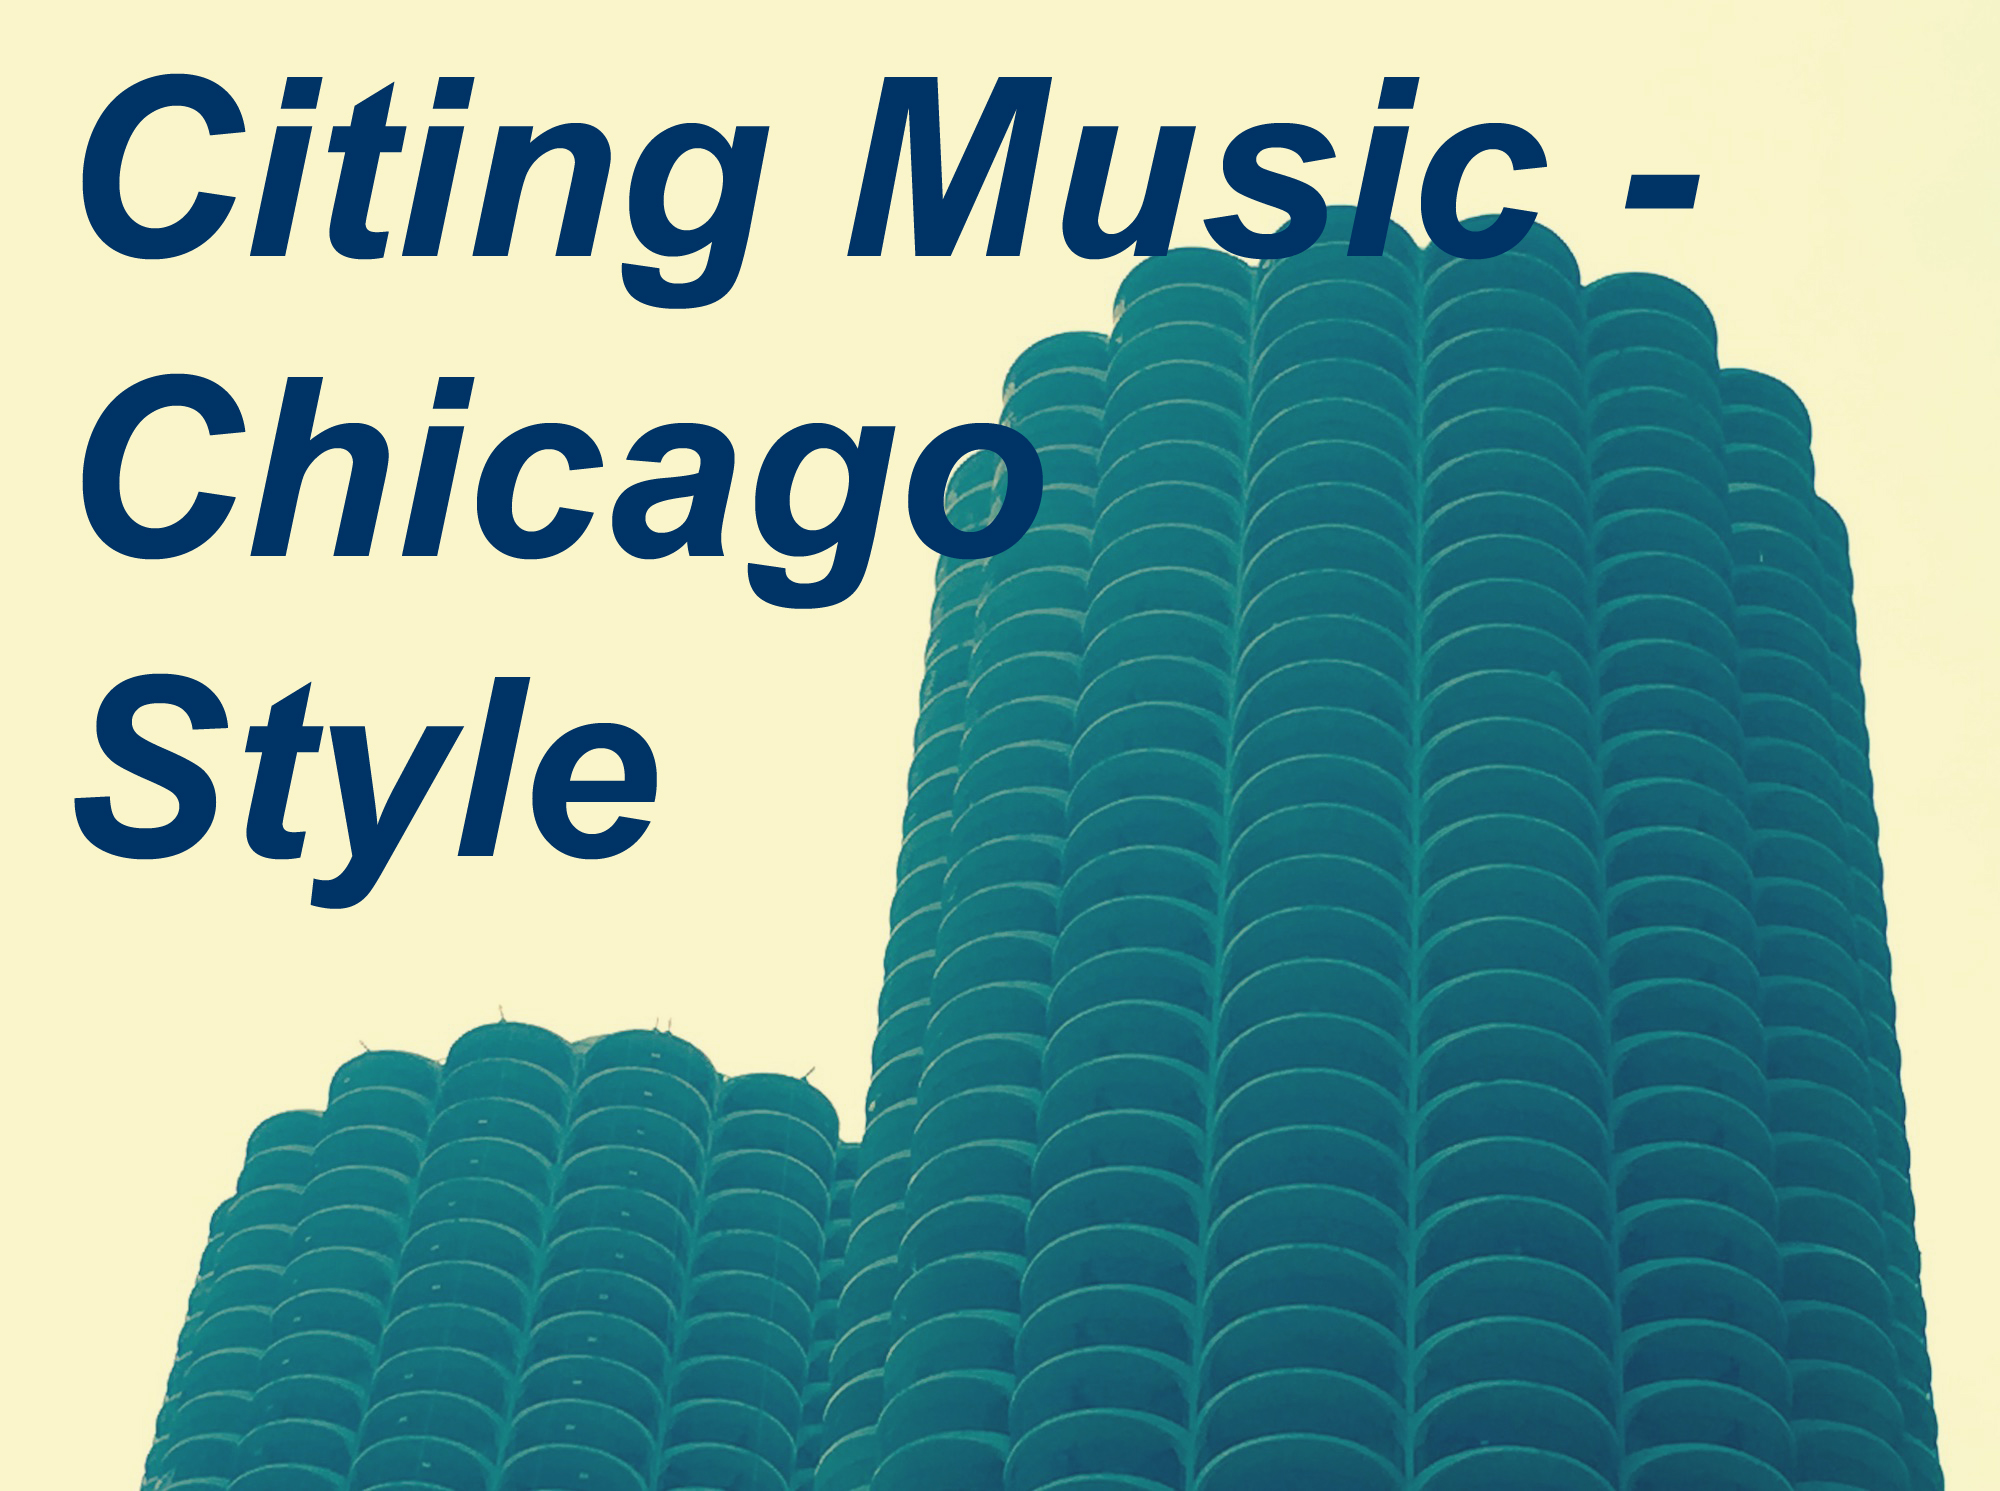 Link to Citing Music - Chicago Style Guide